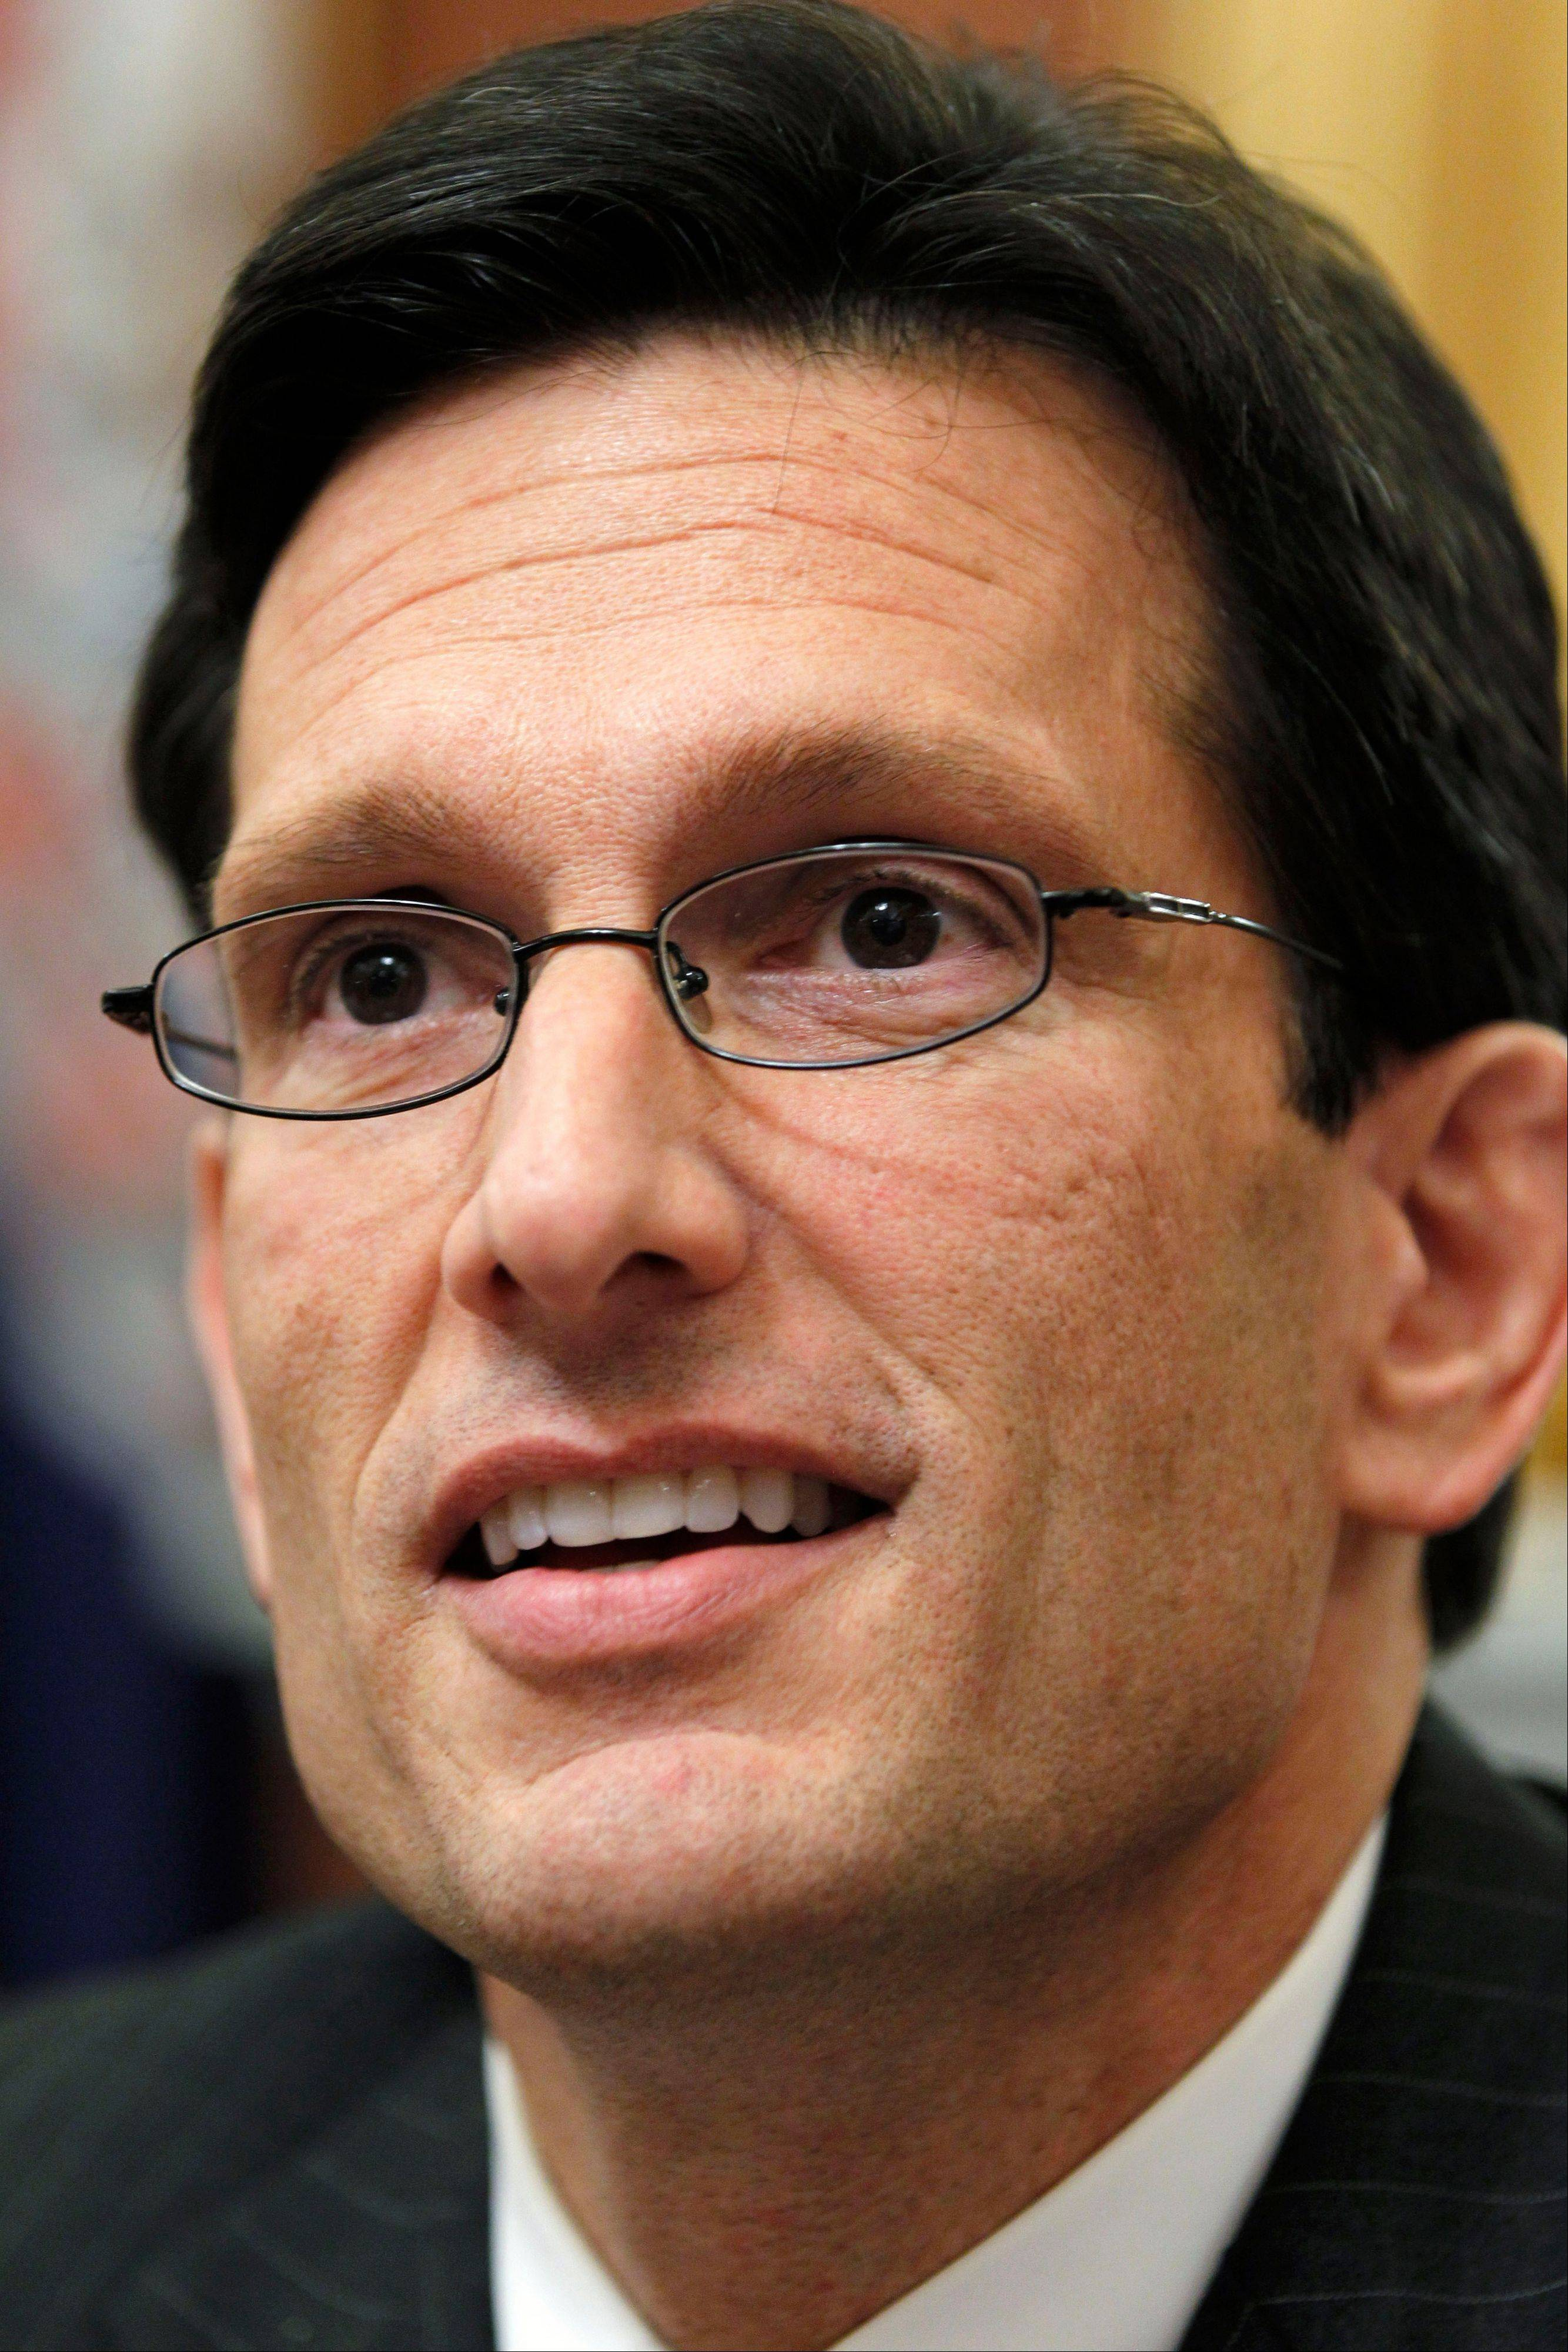 House Majority Leader Eric Cantor, R-Va., meets with reporters in his office on Capitol Hill in Washington.